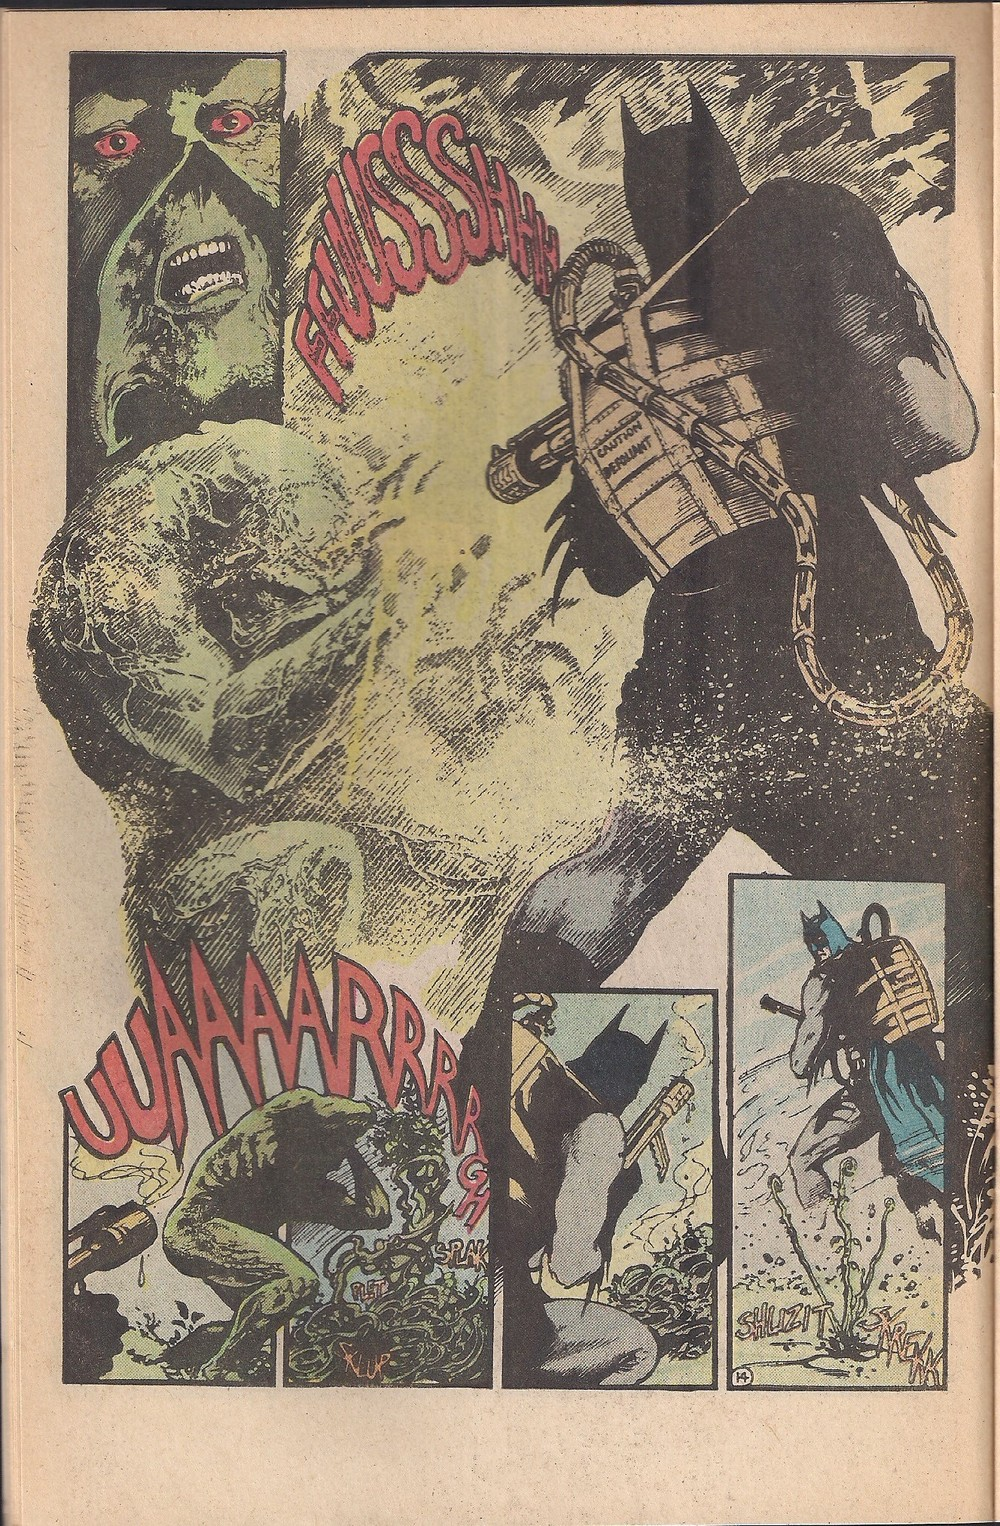 Batman is about to find out that Swamp Thing is RoundUp resistant!